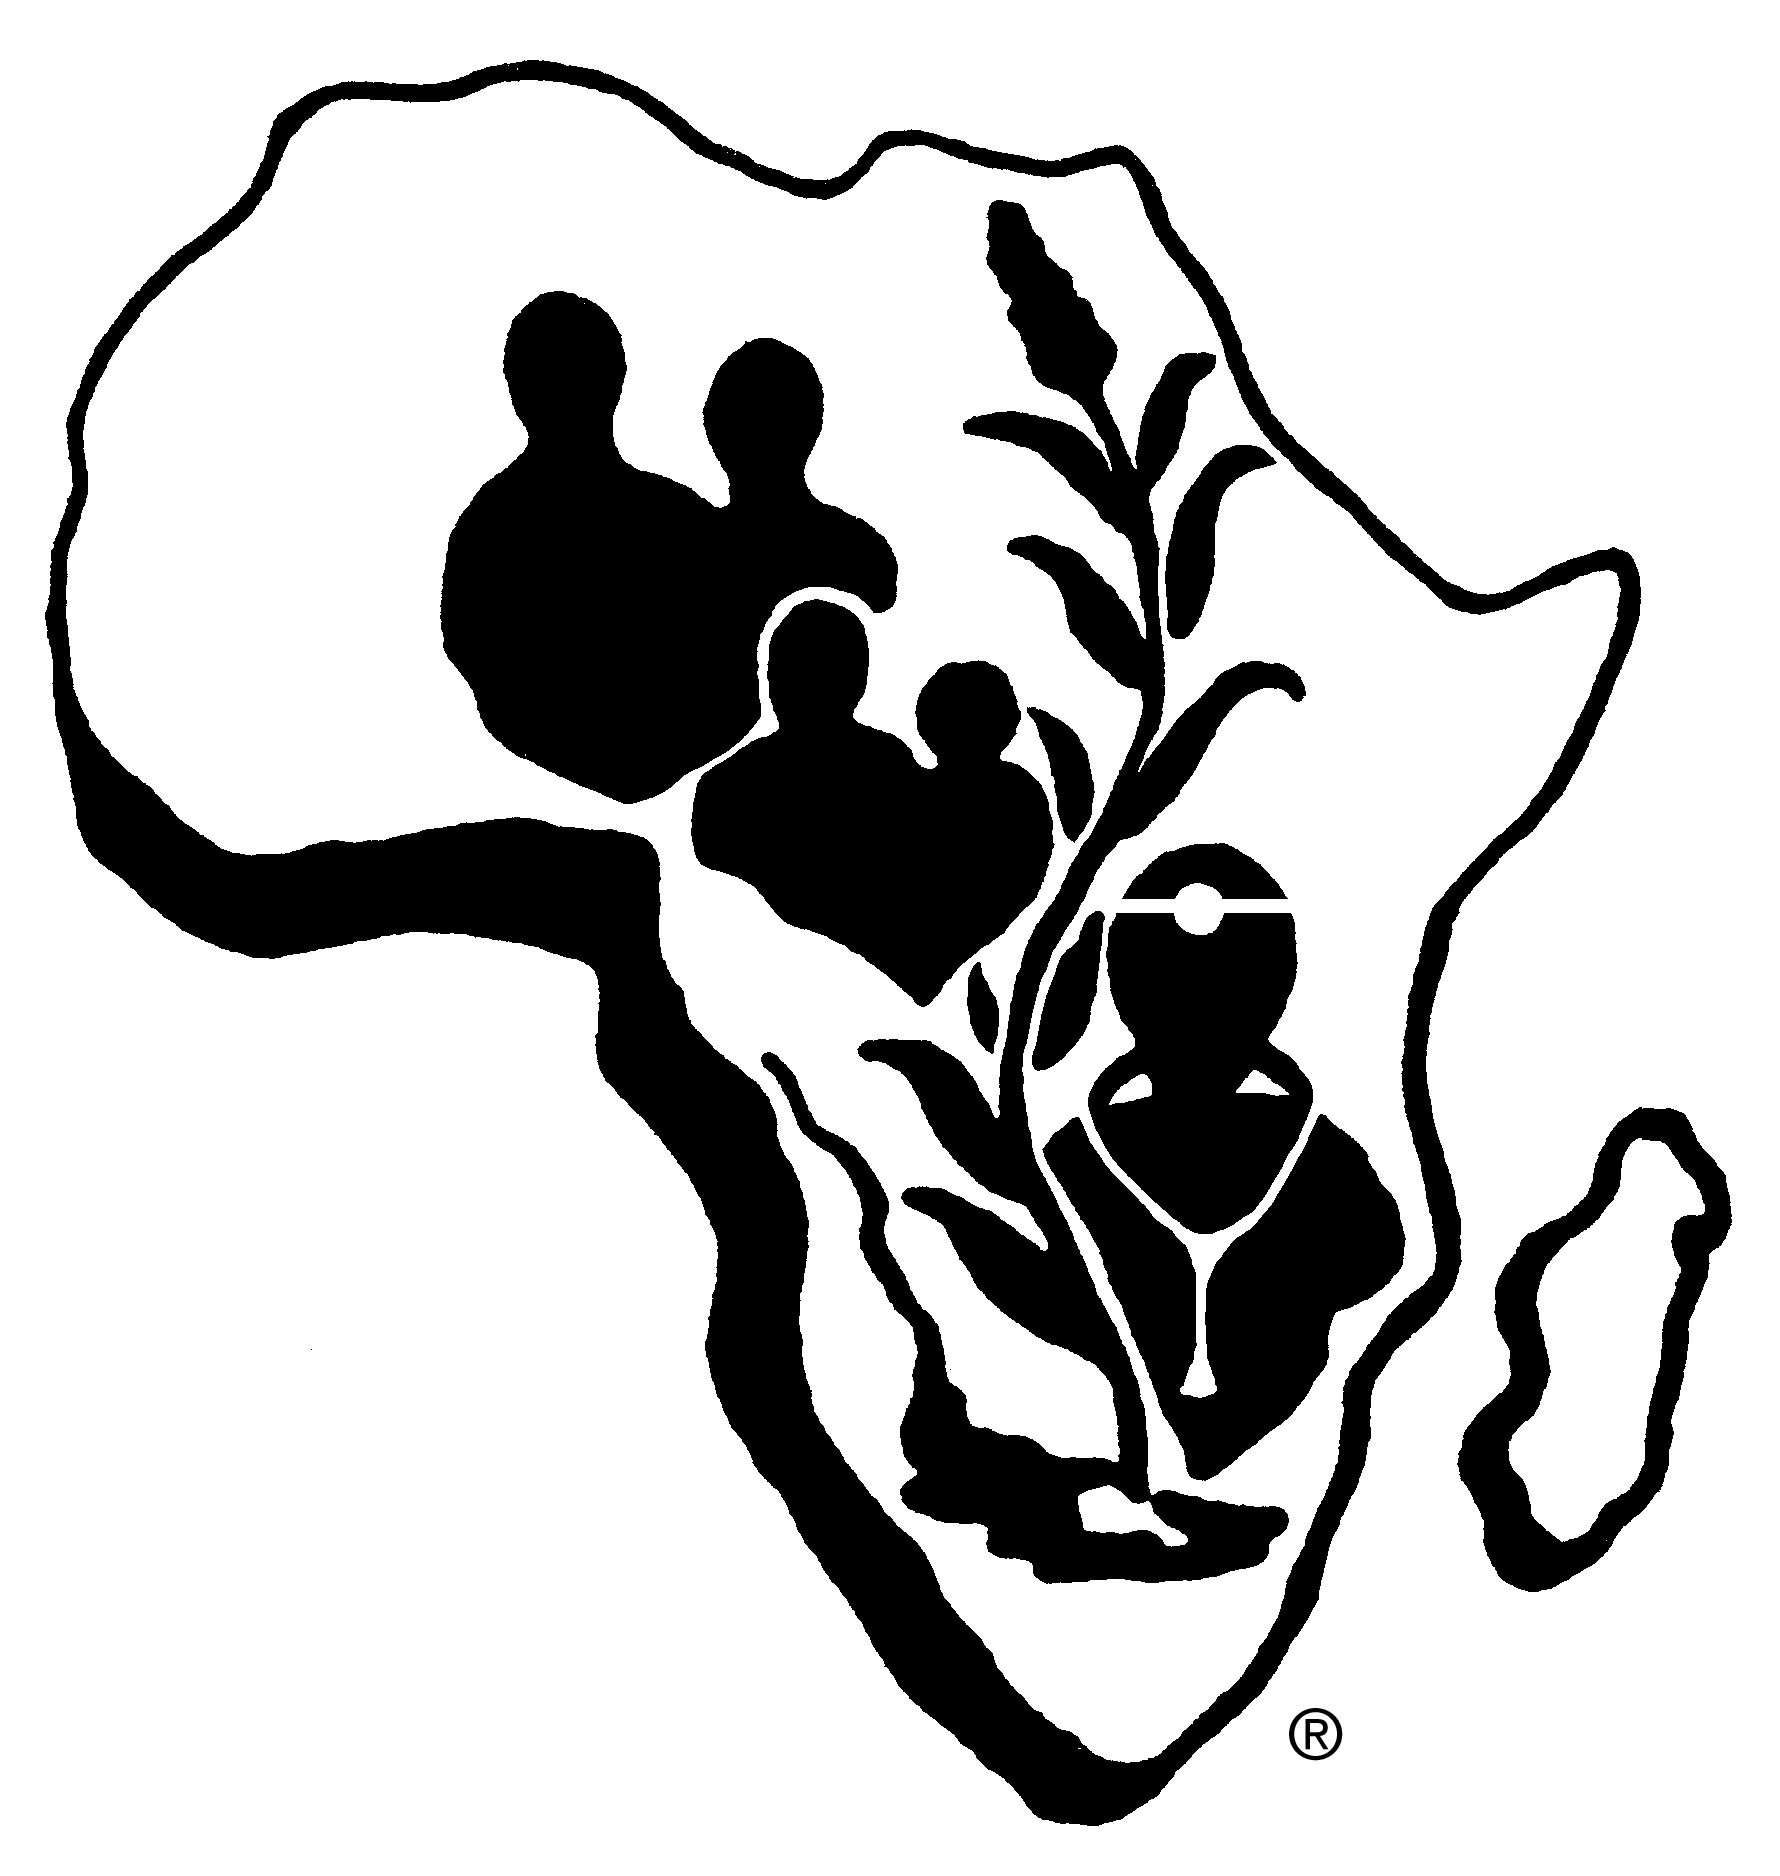 logo for Africare